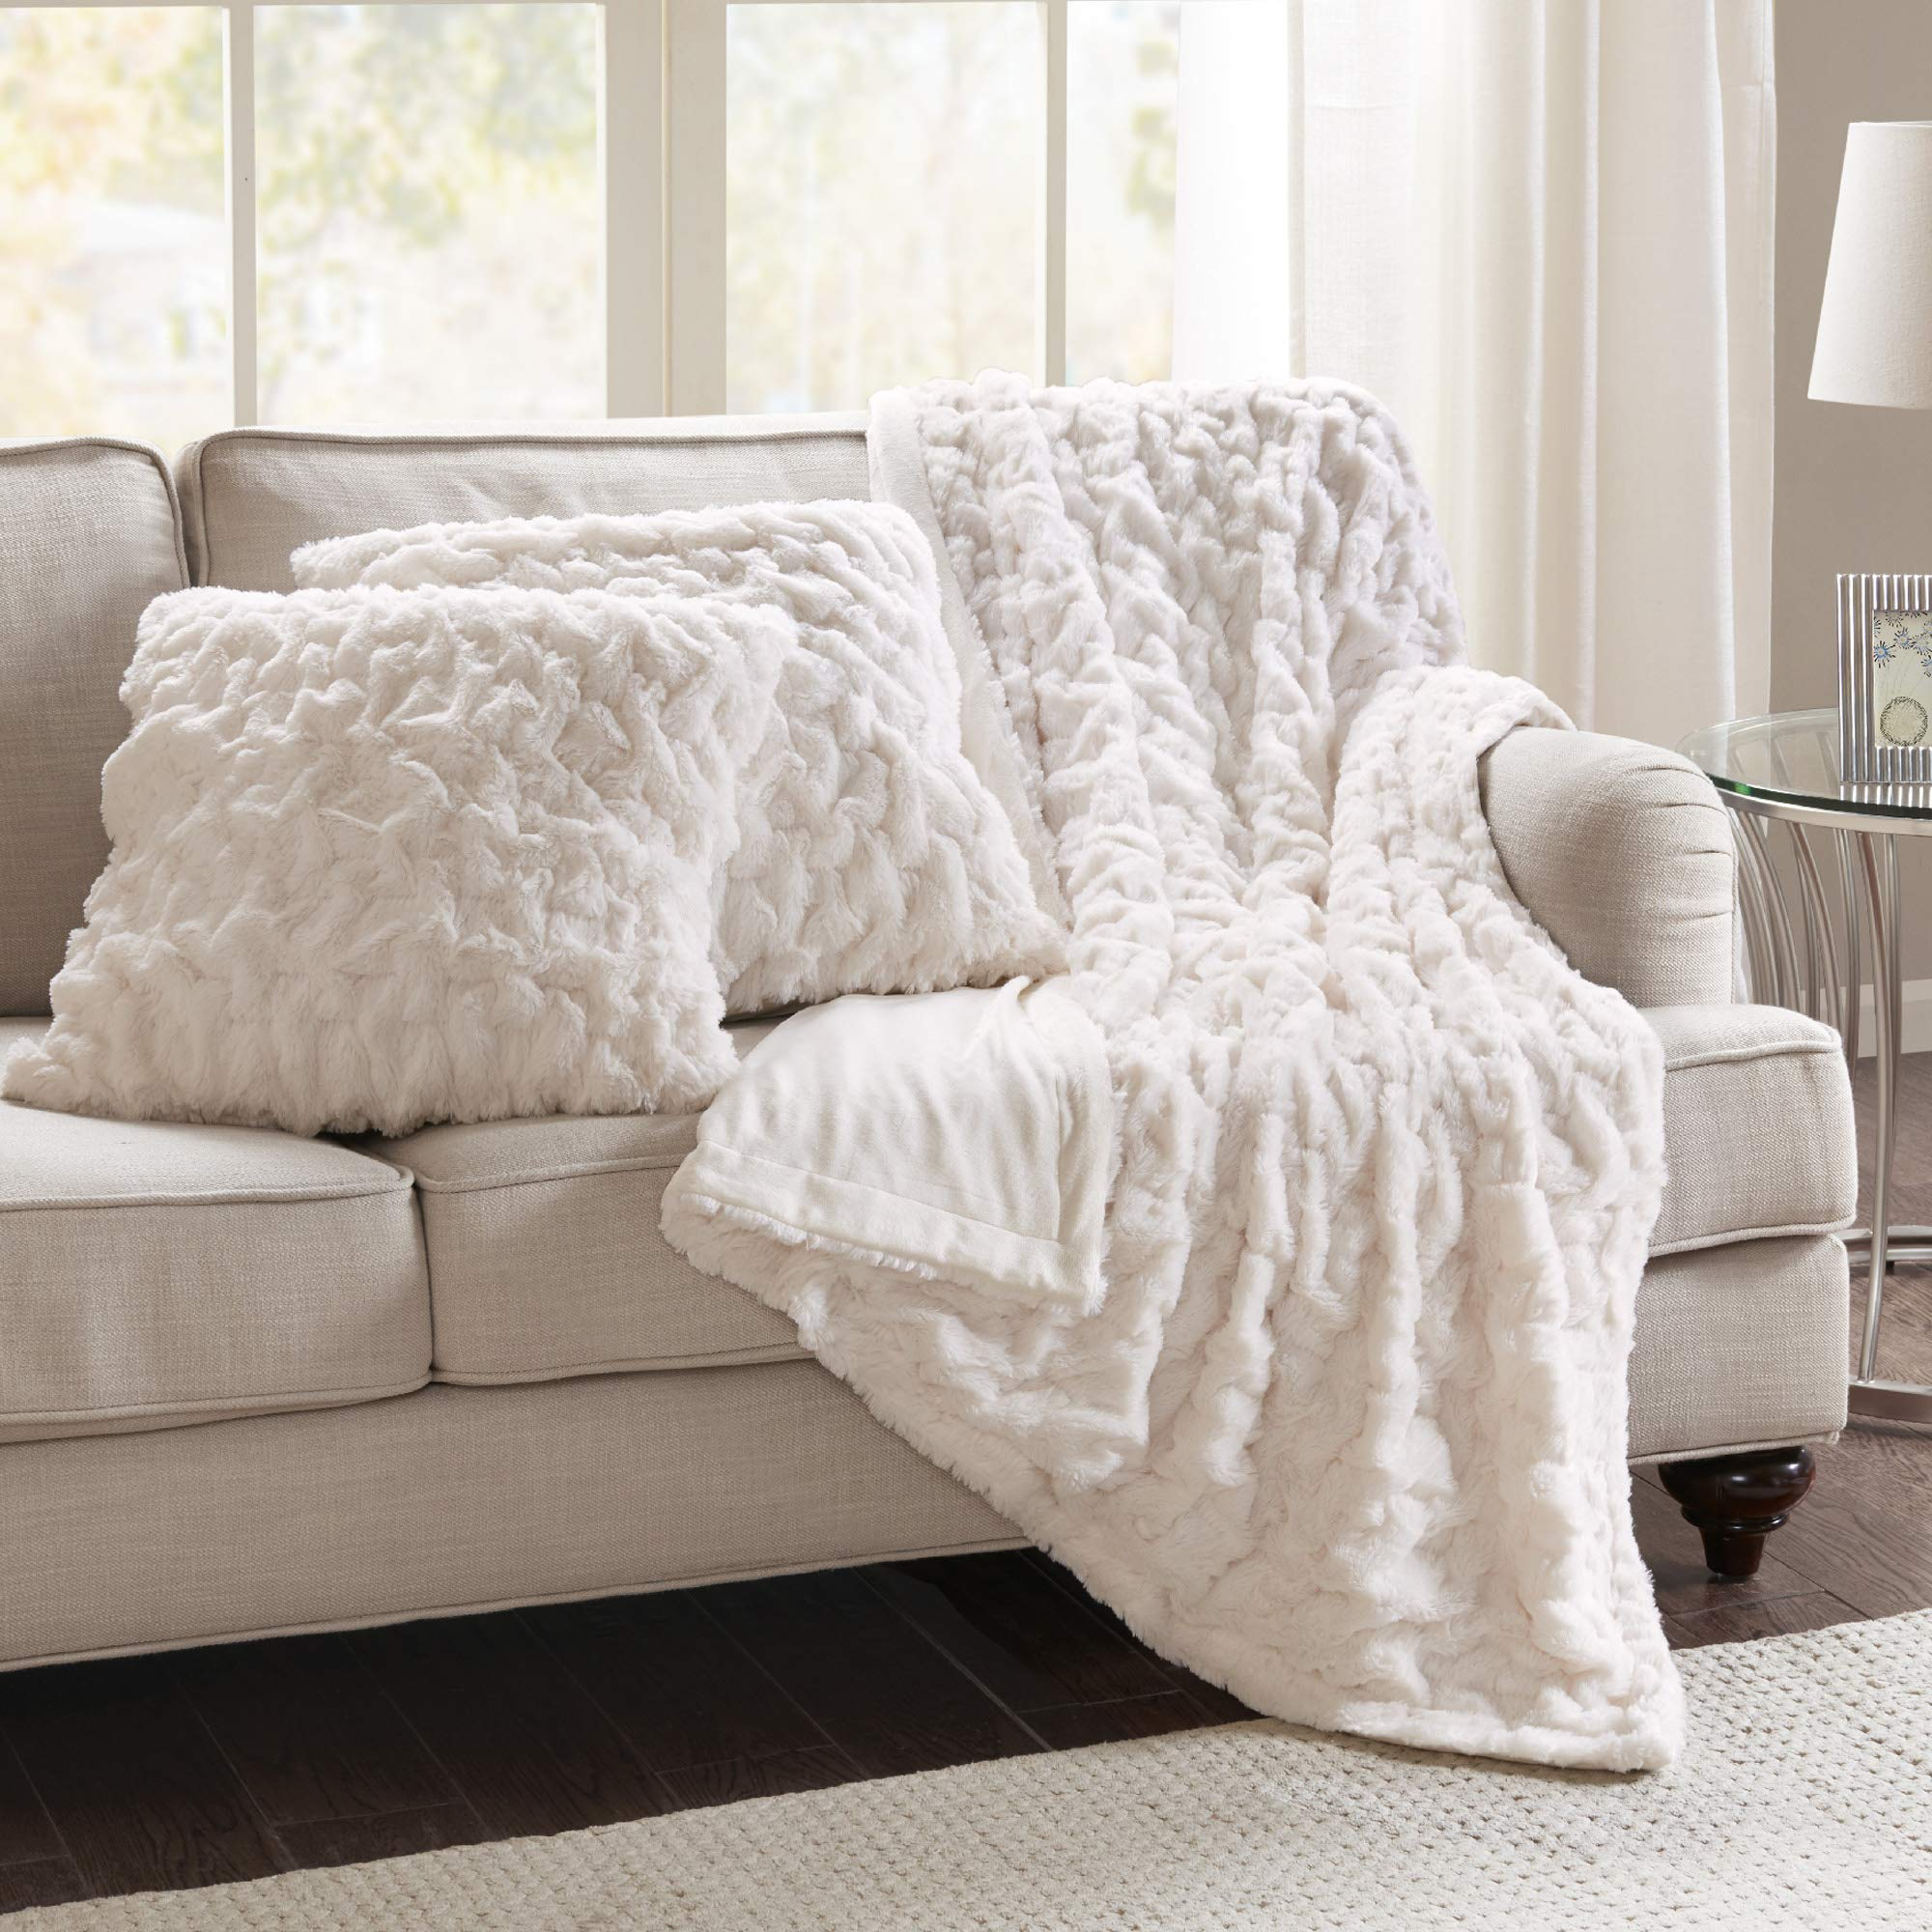 Amazing Details About Comfort Spaces Faux Fur Throw Blanket Set Fluffy Plush Blankets For Couch Forskolin Free Trial Chair Design Images Forskolin Free Trialorg